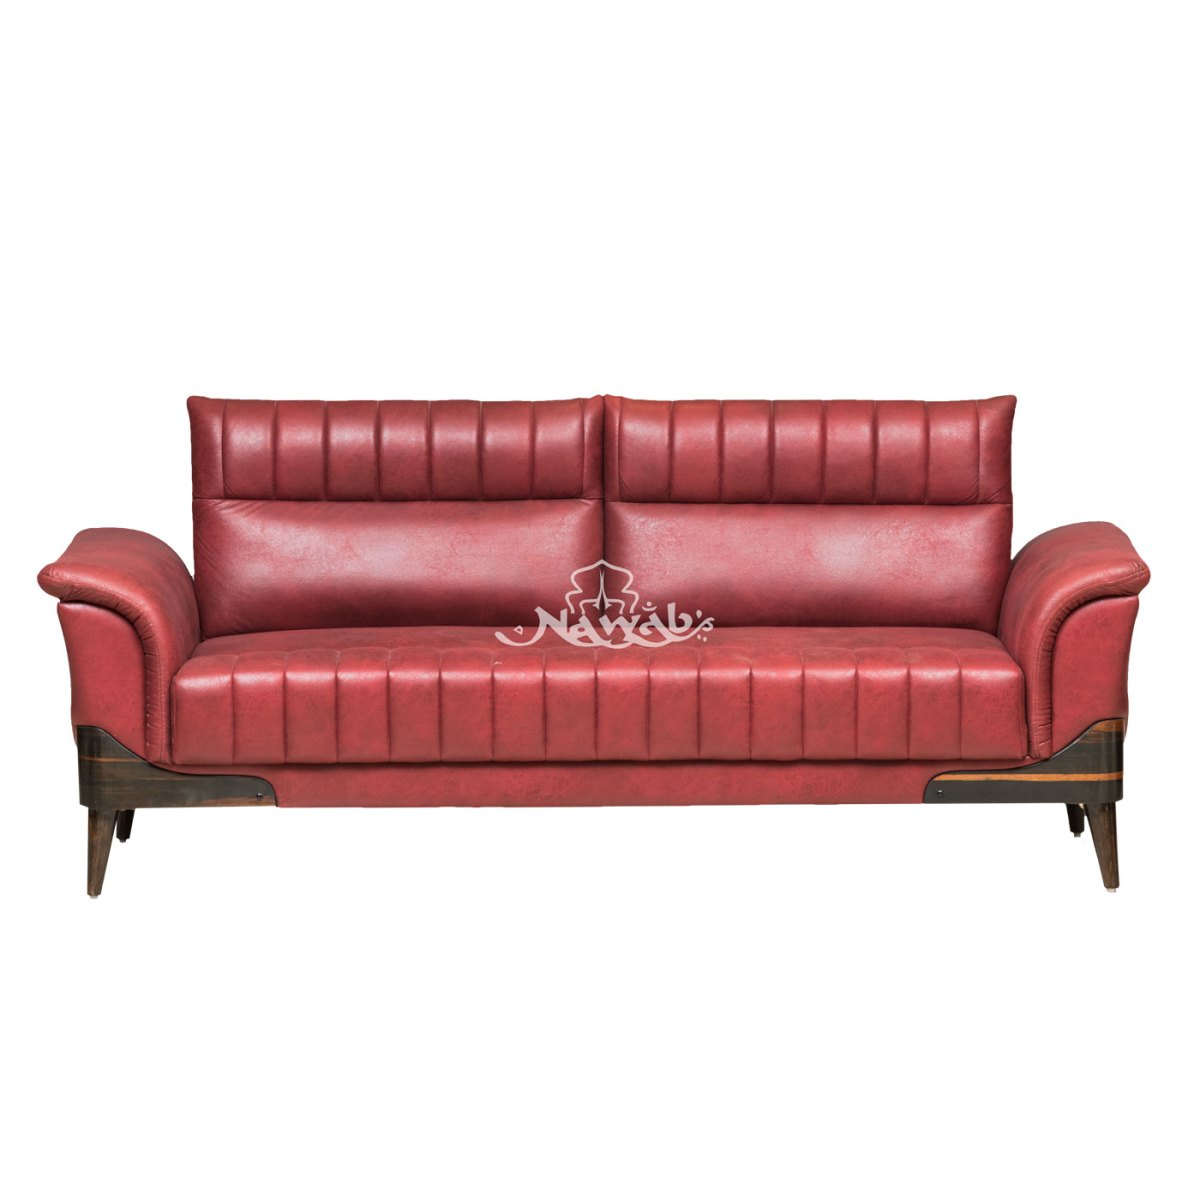 3 Seater upholstered sofa